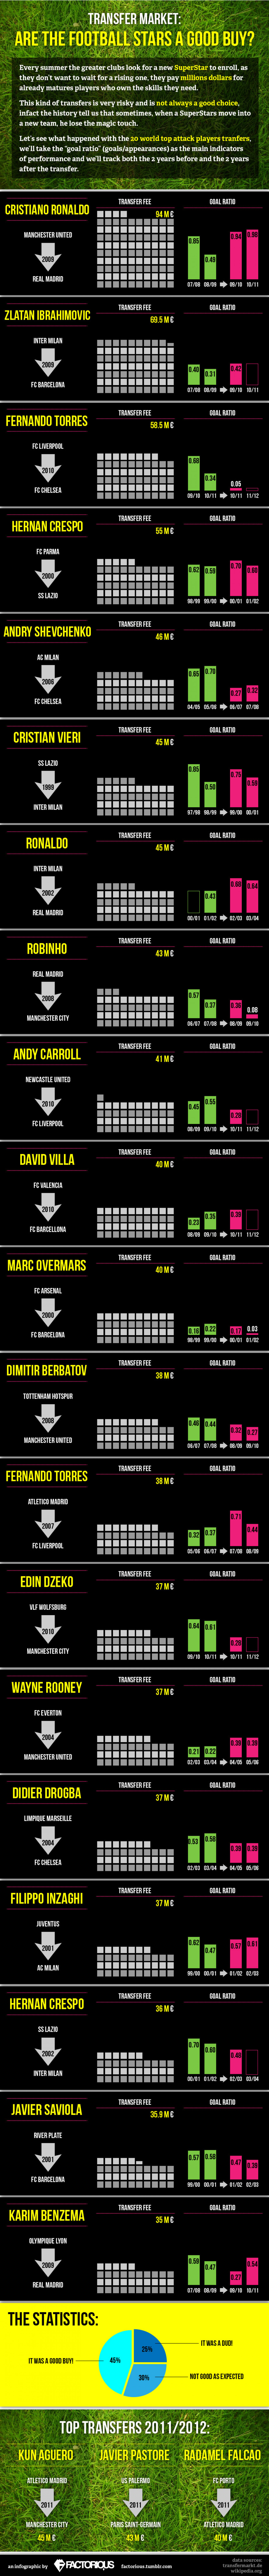 Market Transfer: Are the Superstars a Good Buy? Infographic